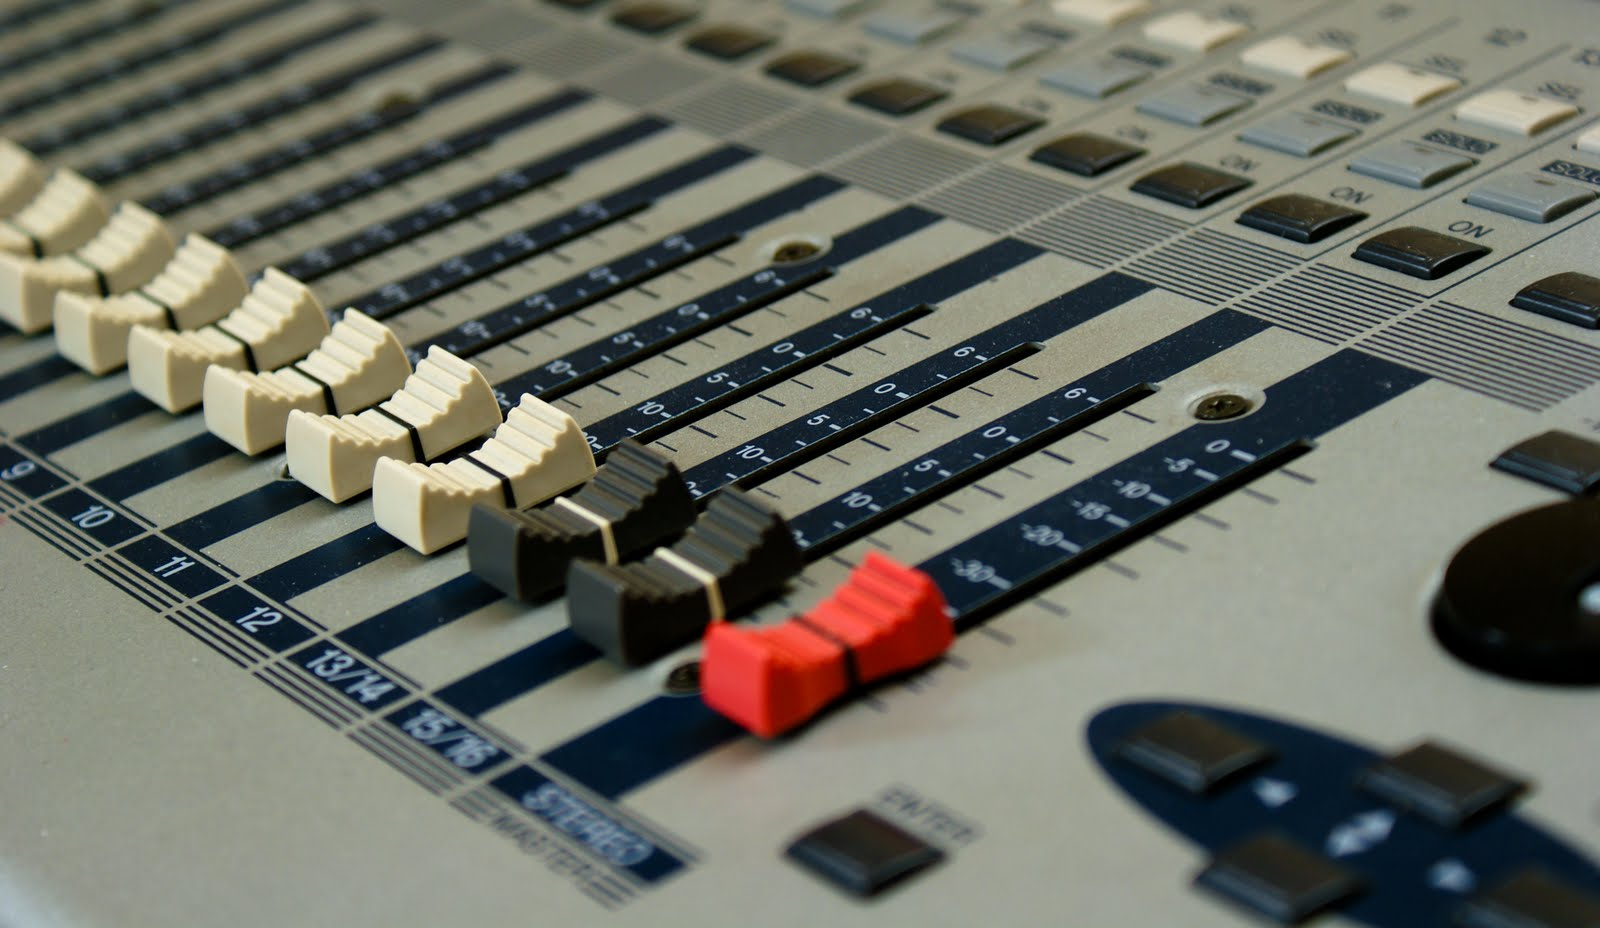 Stock photo of a mixing desk